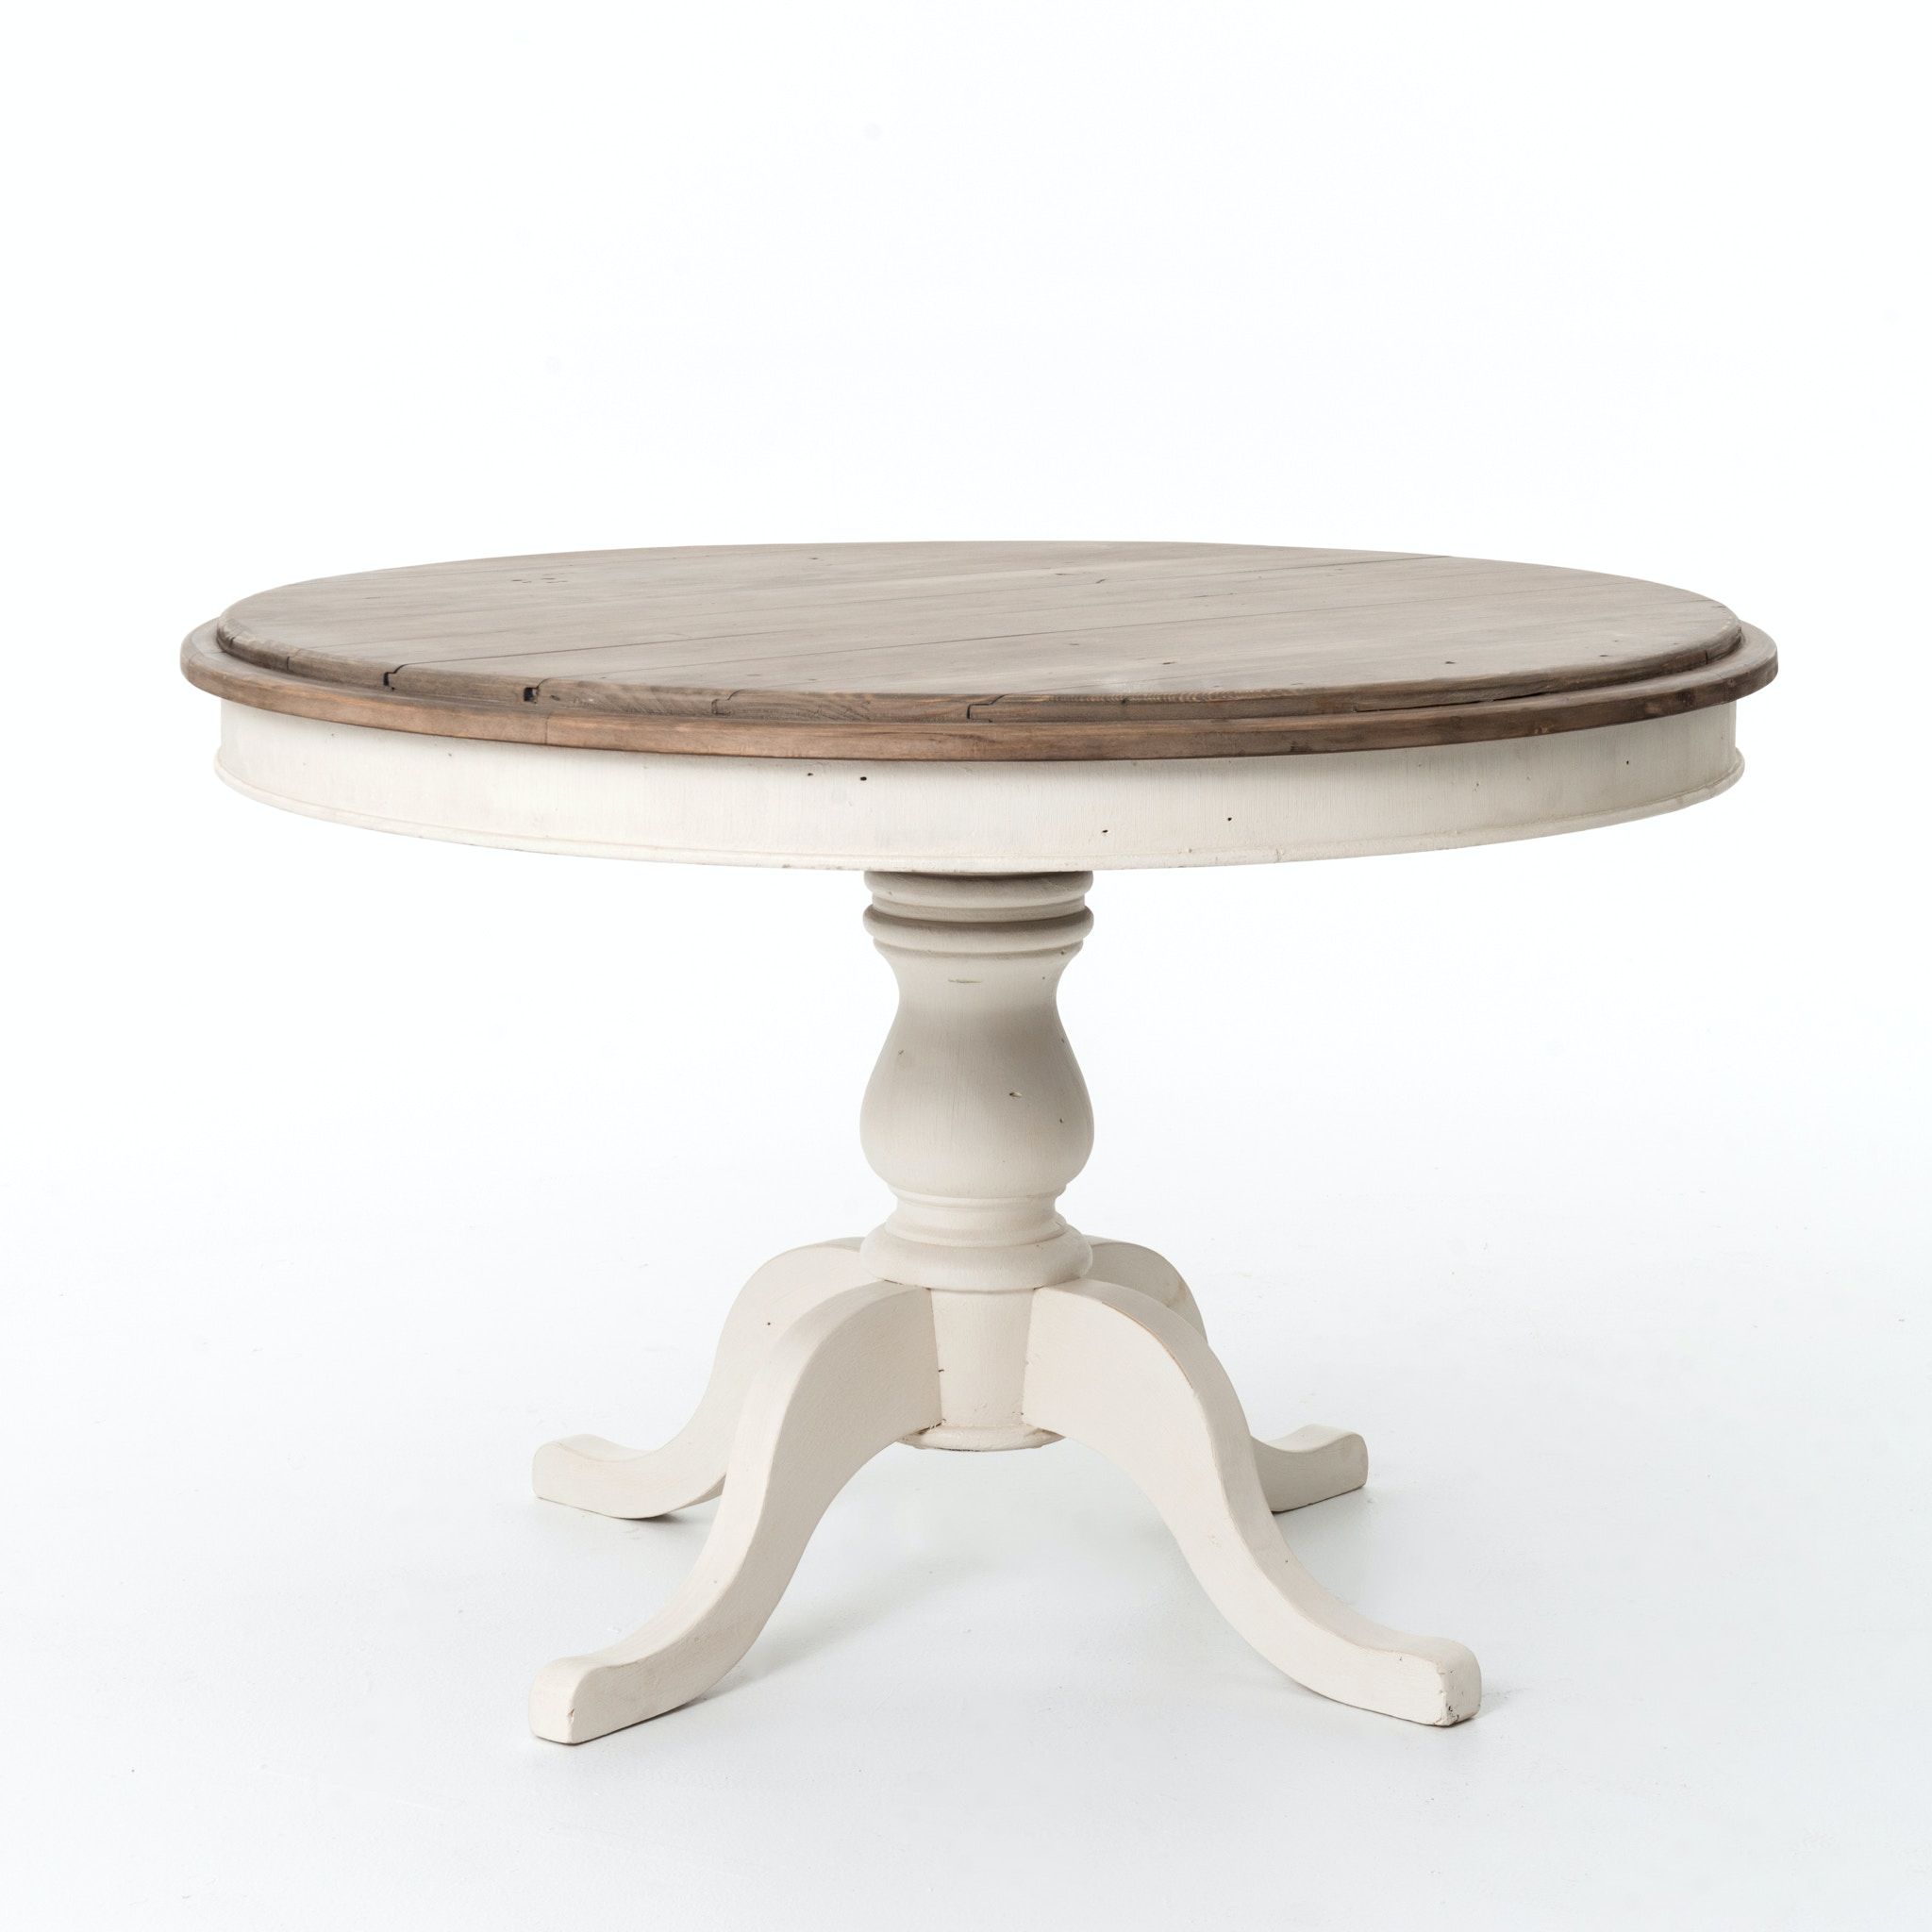 Four Hands Furniture Cornwall Round Dining Table 47u0027u0027 Suna Wh VCCD